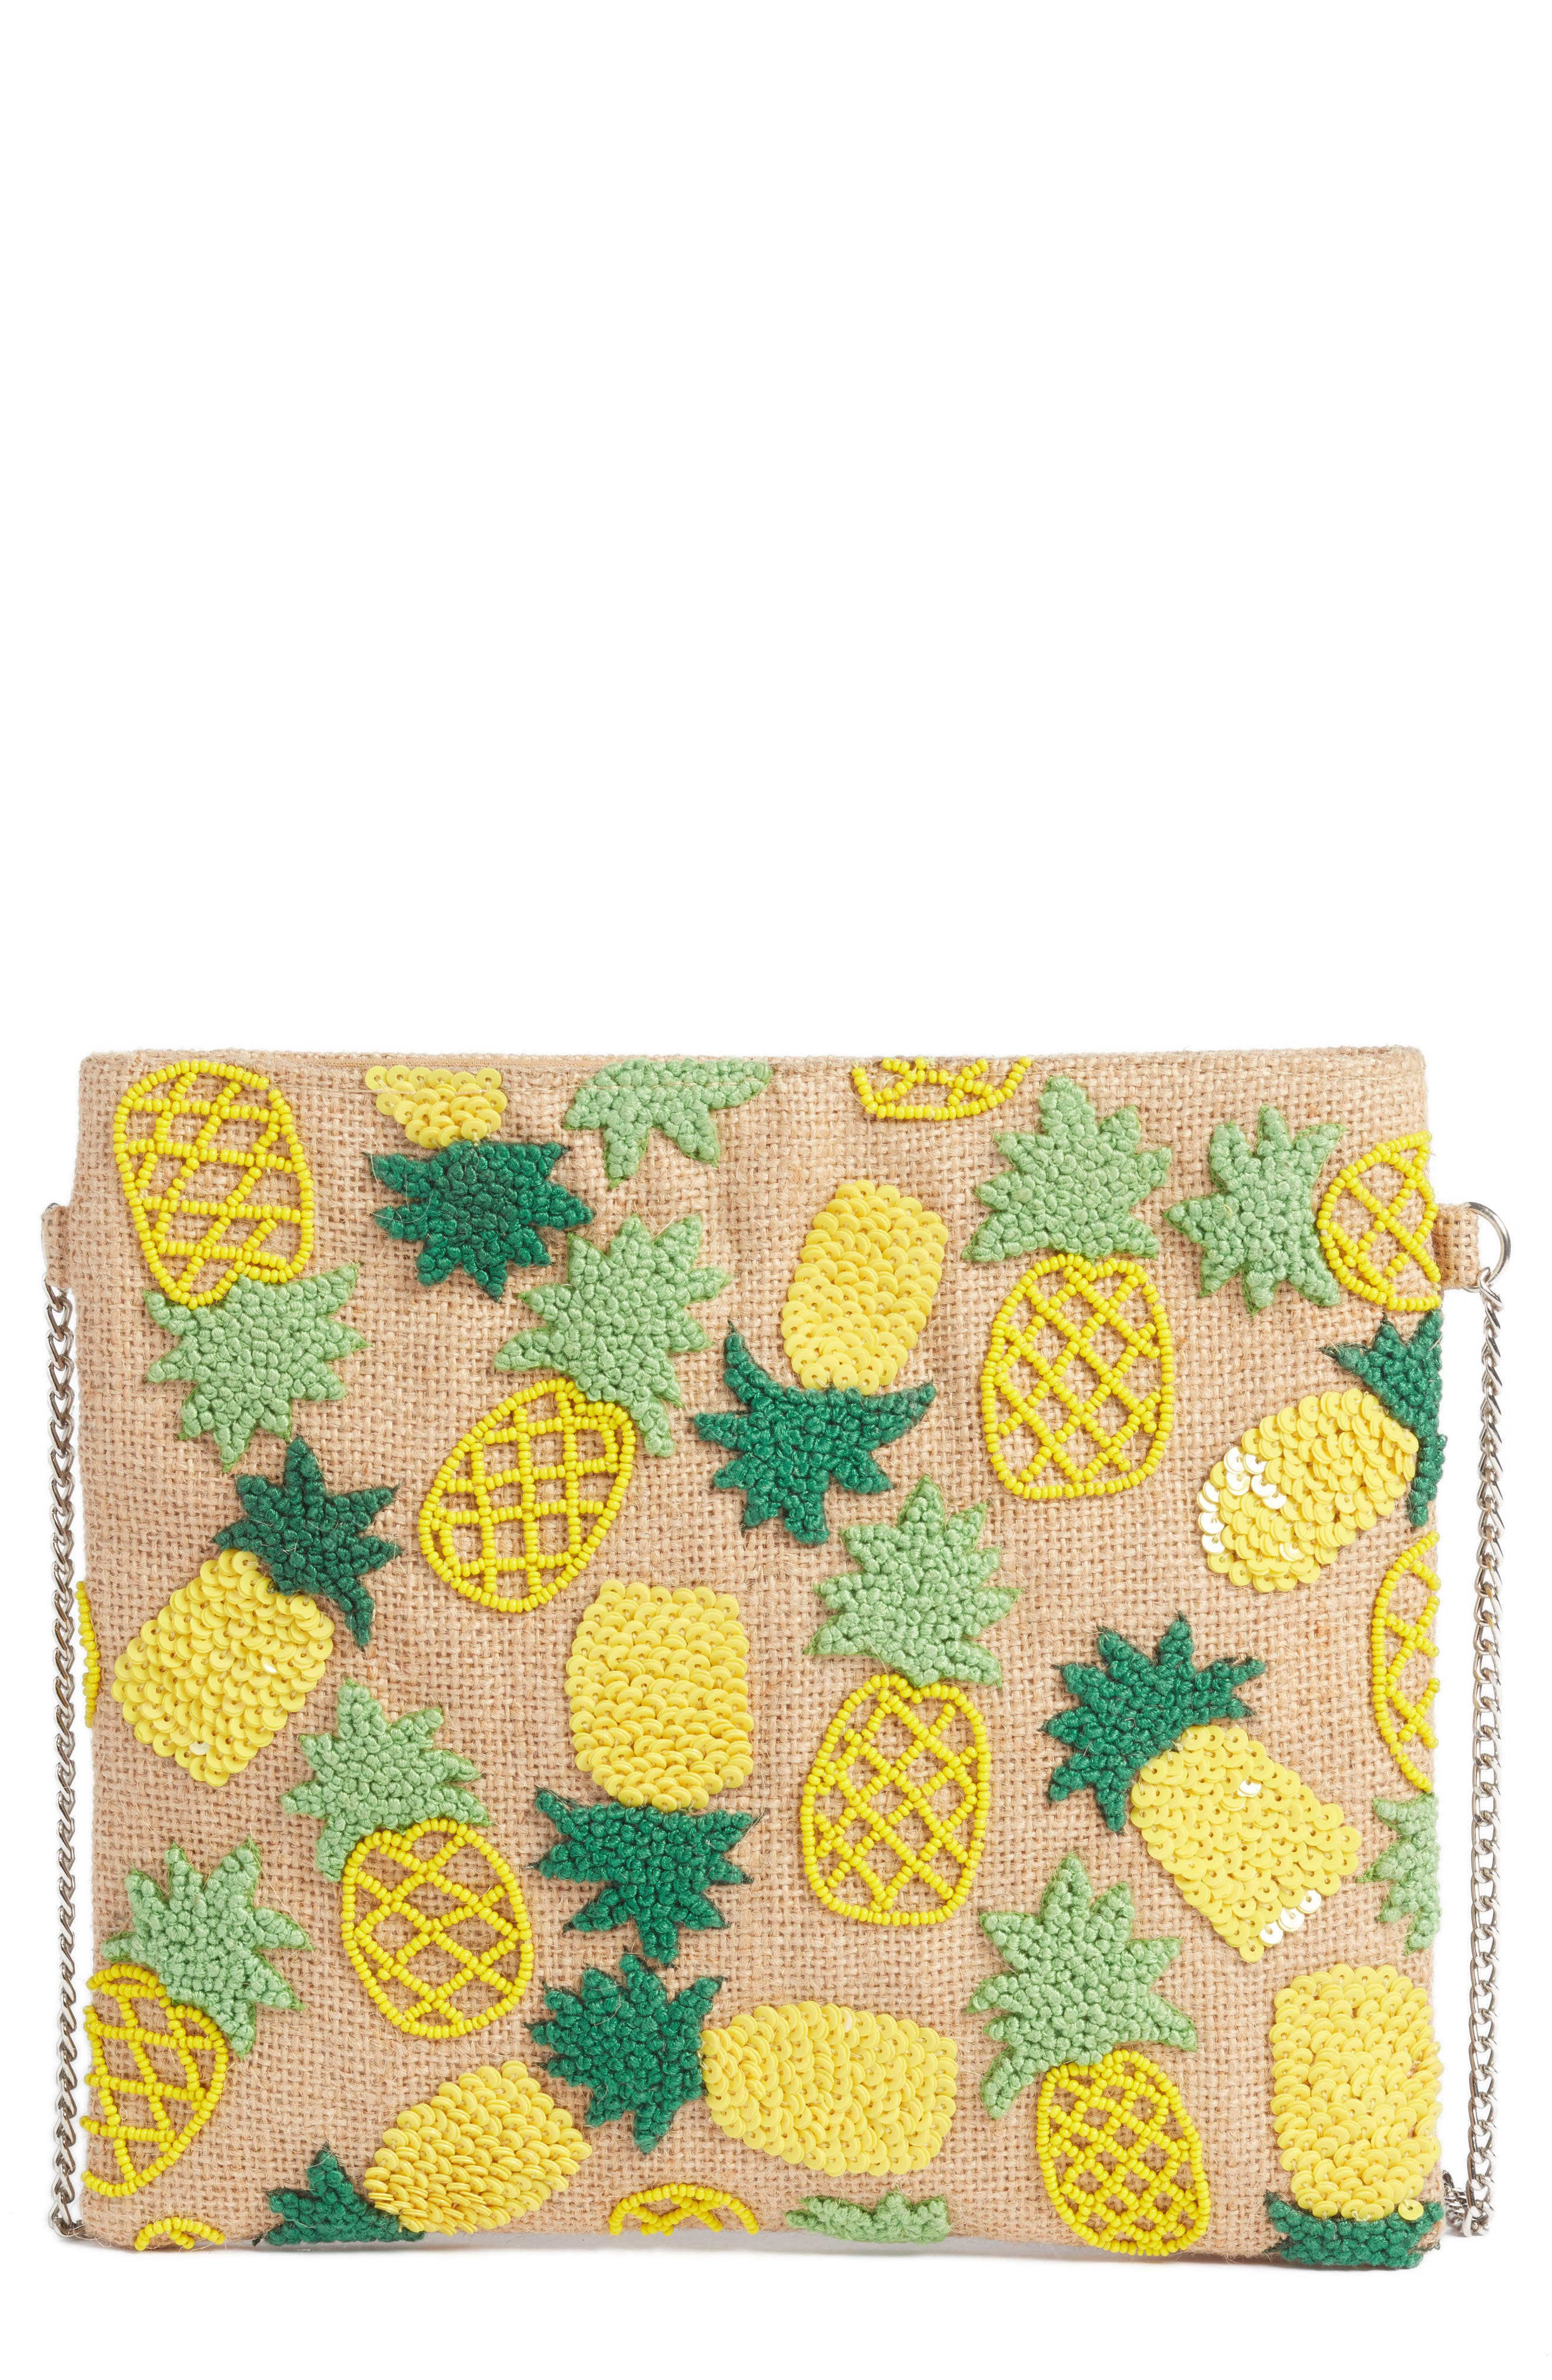 AREA STARS Pineapple Crossbody Bag - Pink in Natural